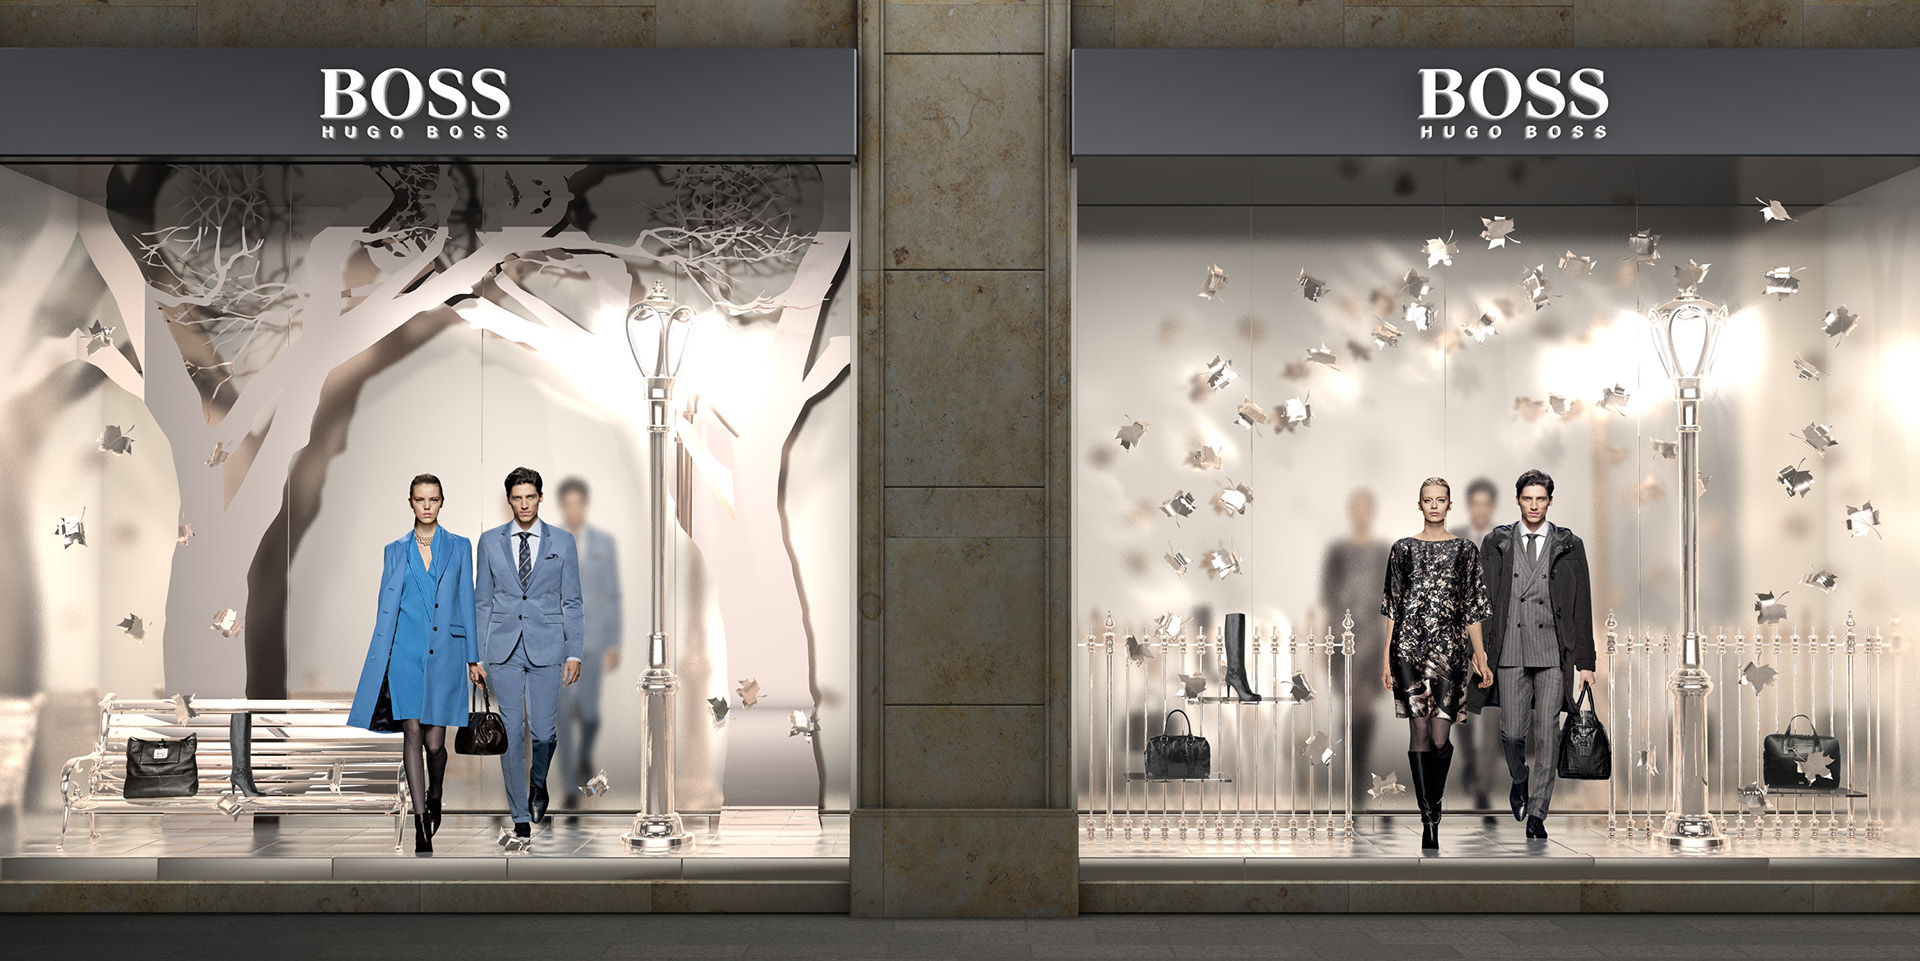 In this silver winter window display, were used images of real people instead of mannequins, with a stylish and classy setup.